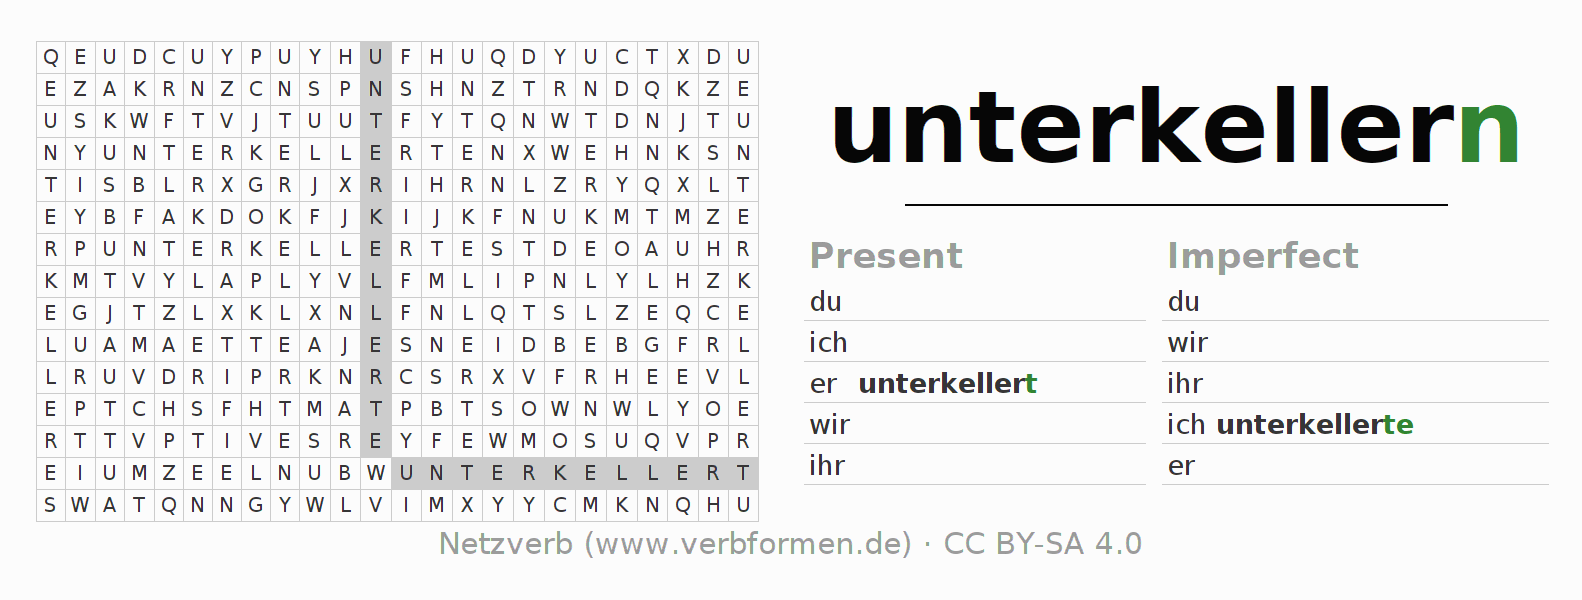 Word search puzzle for the conjugation of the verb unterkellern